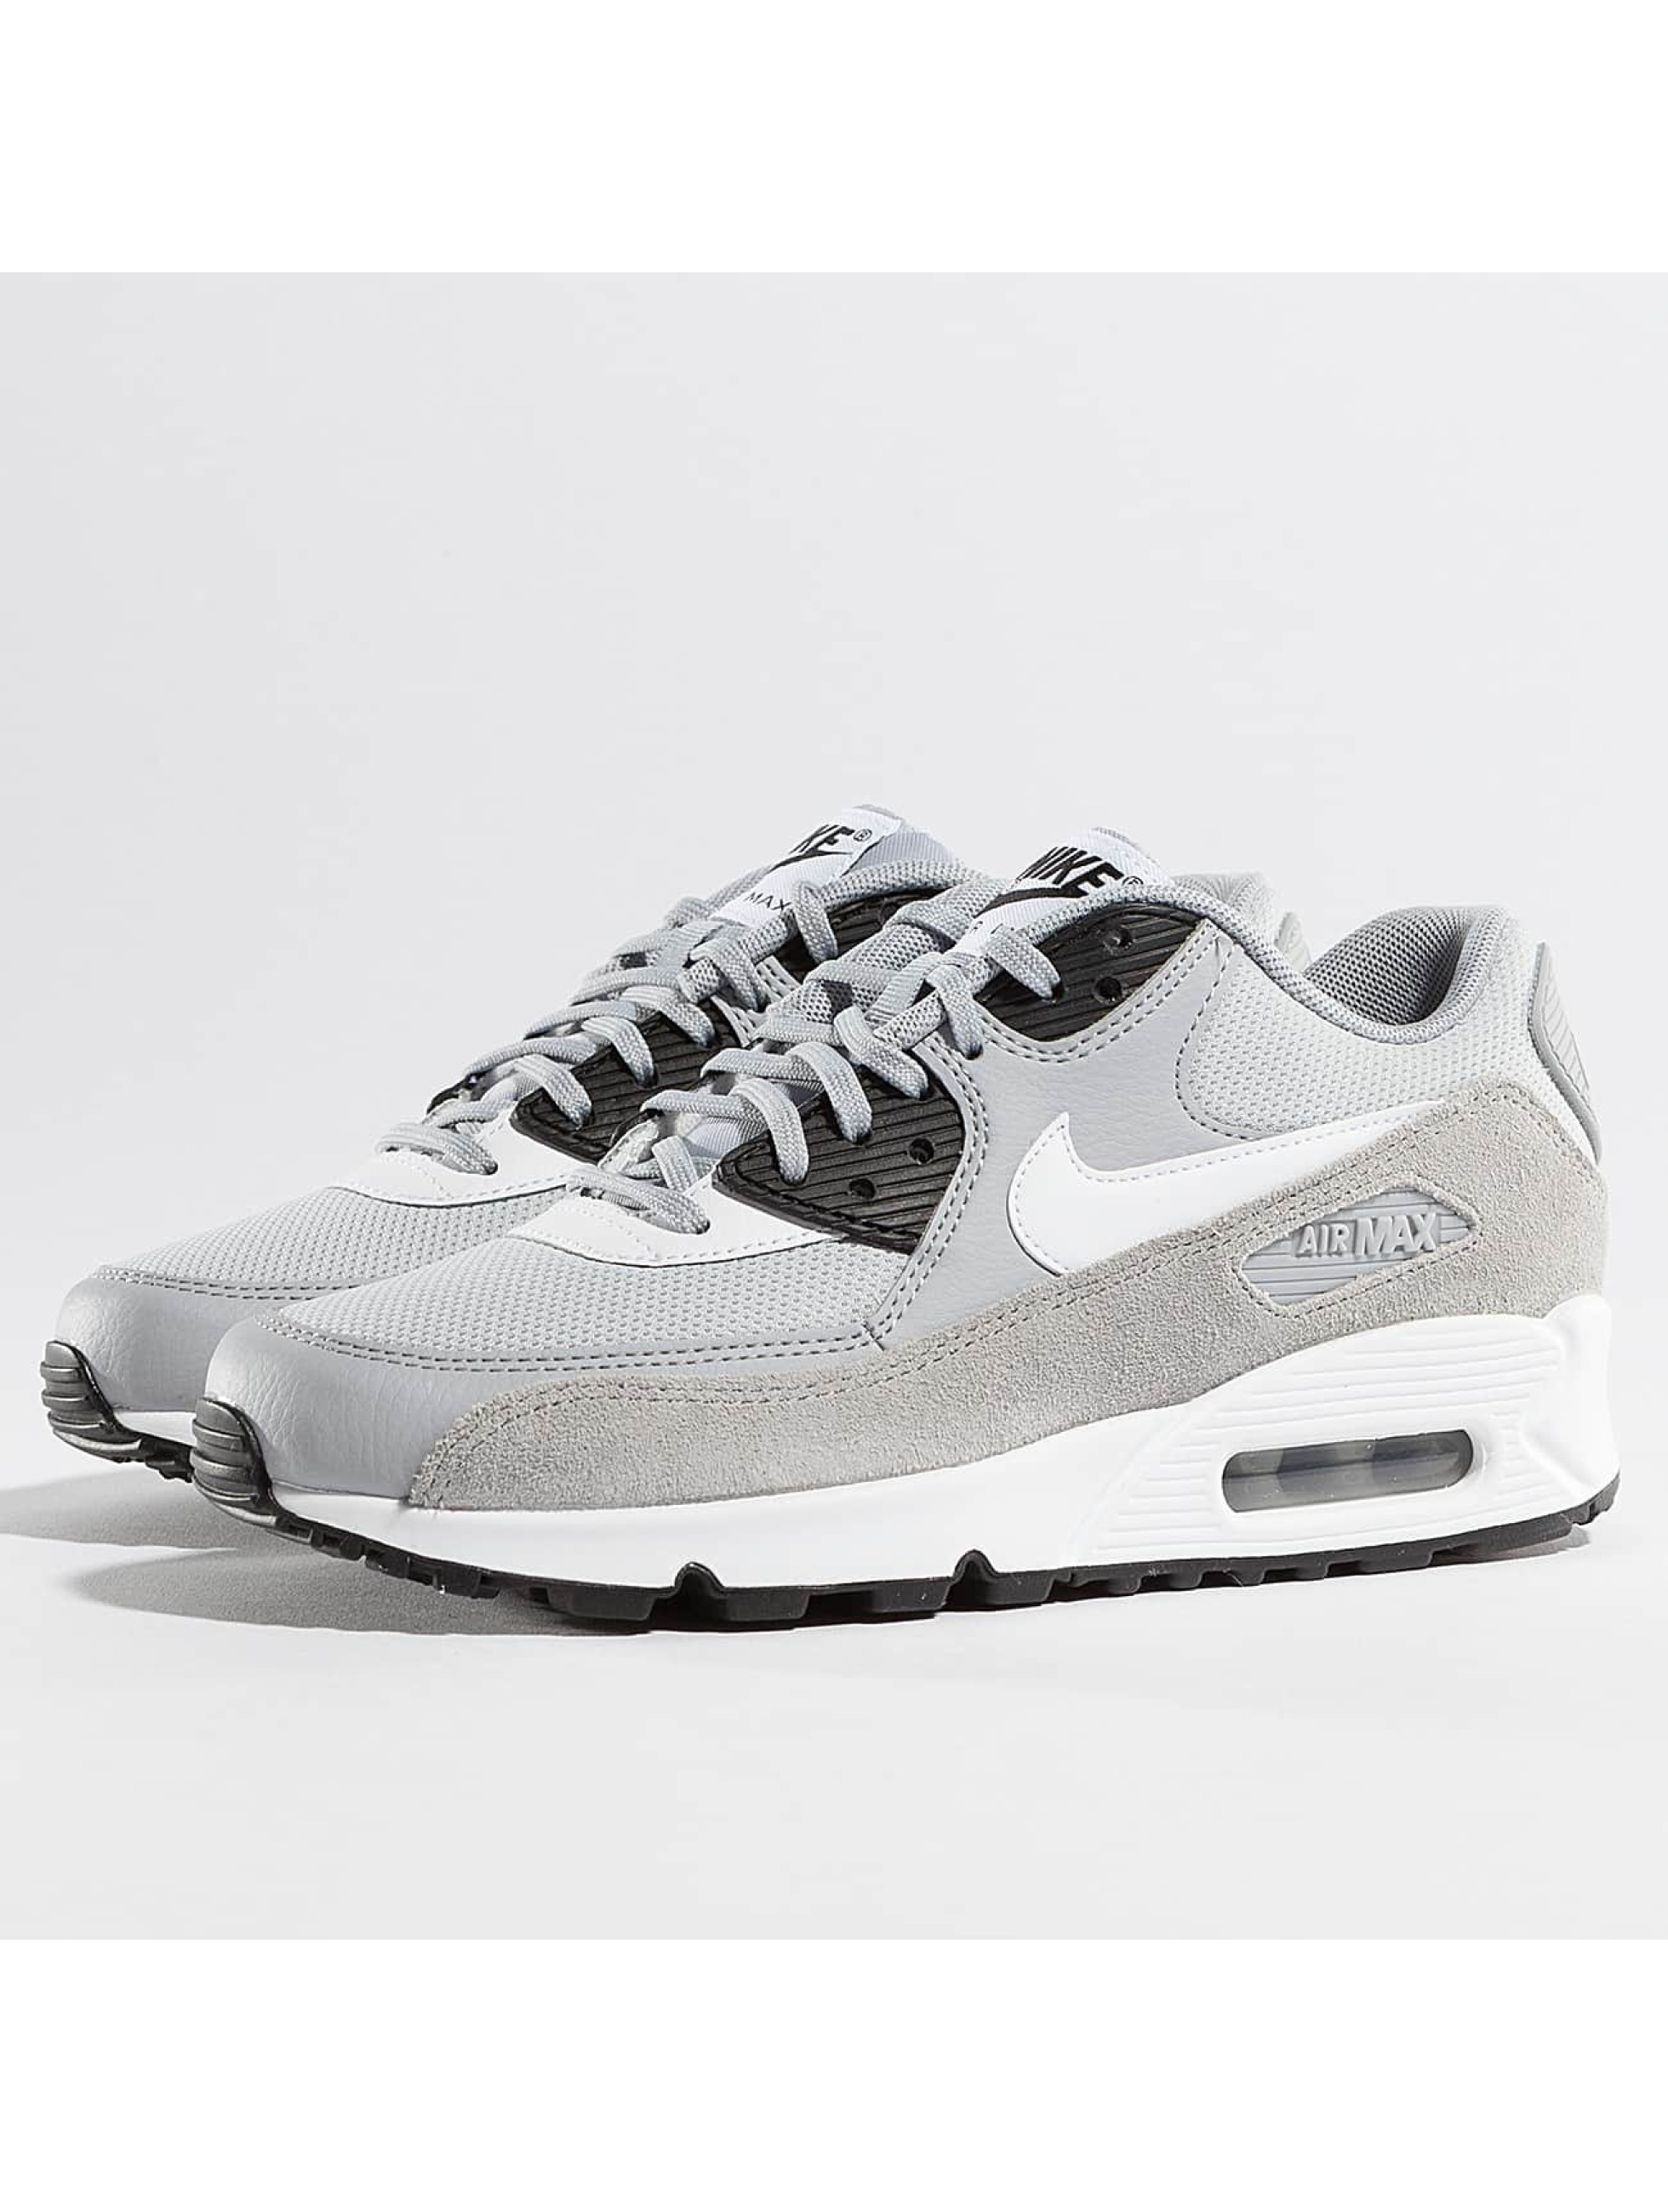 lower price with 78e99 6fea1 inexpensive nike frauen sneaker air max 90 in grau fe46c fc99f